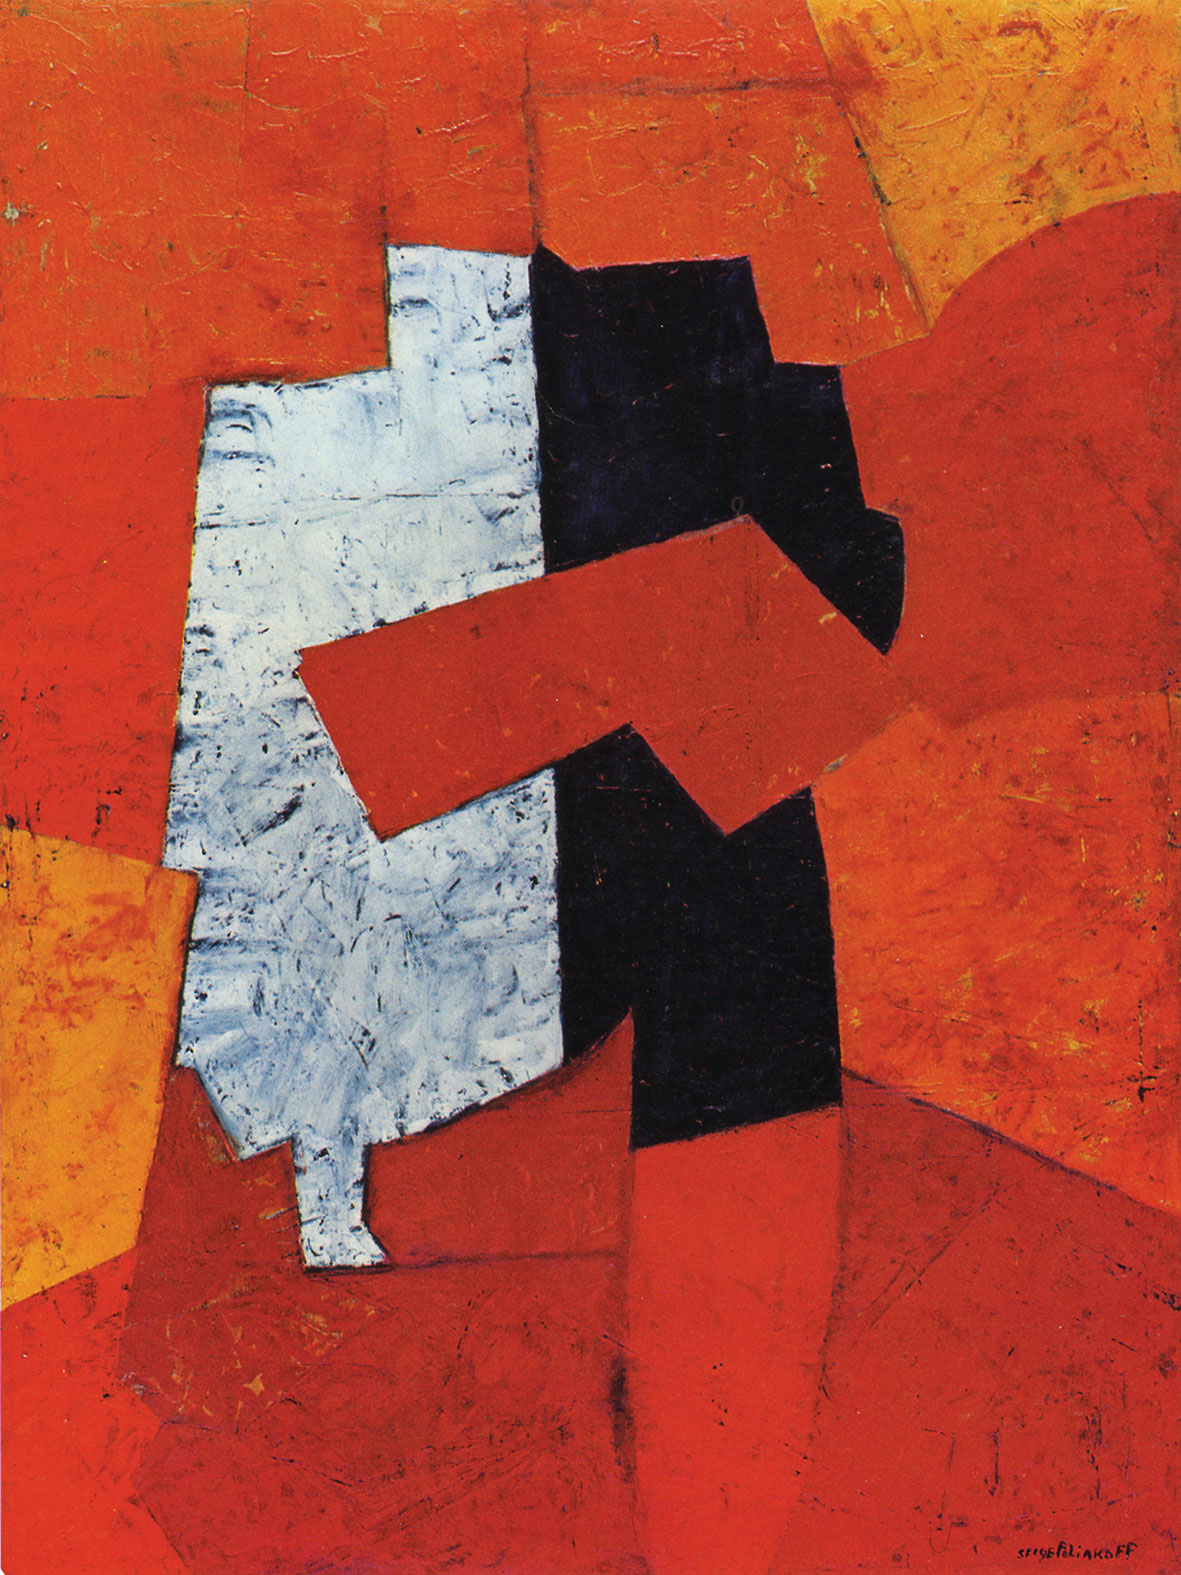 Serge Poliakoff, Composition, 1950, 51 3/8 x 38 1/4 inches, oil on plywood  (cou